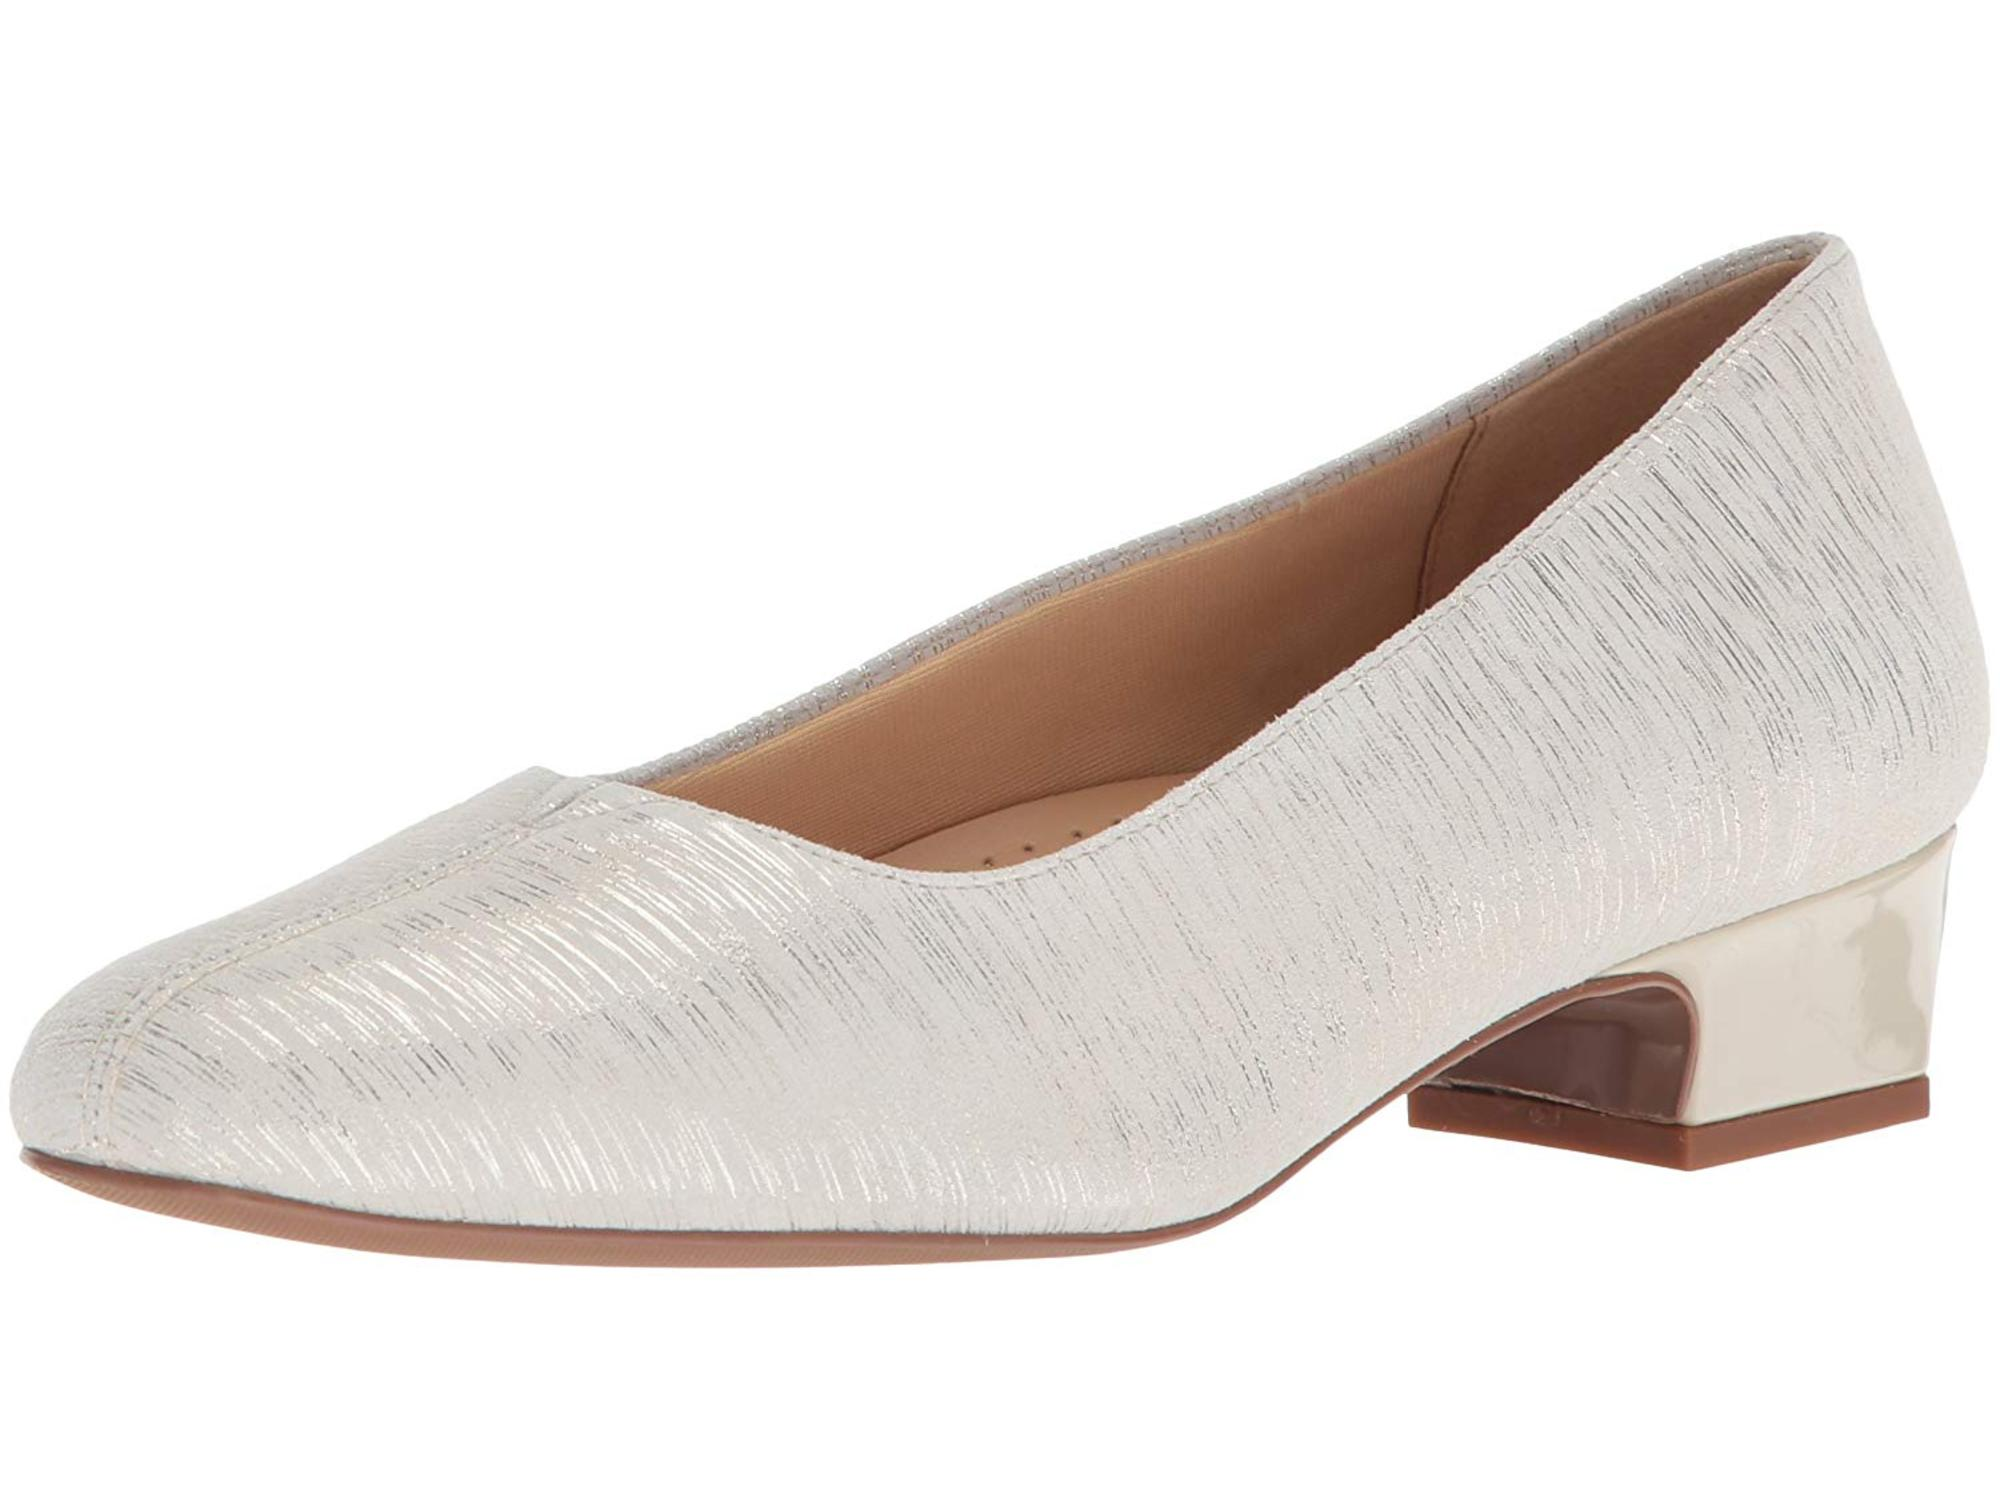 Trotters Women's Doris Pump by Trotters